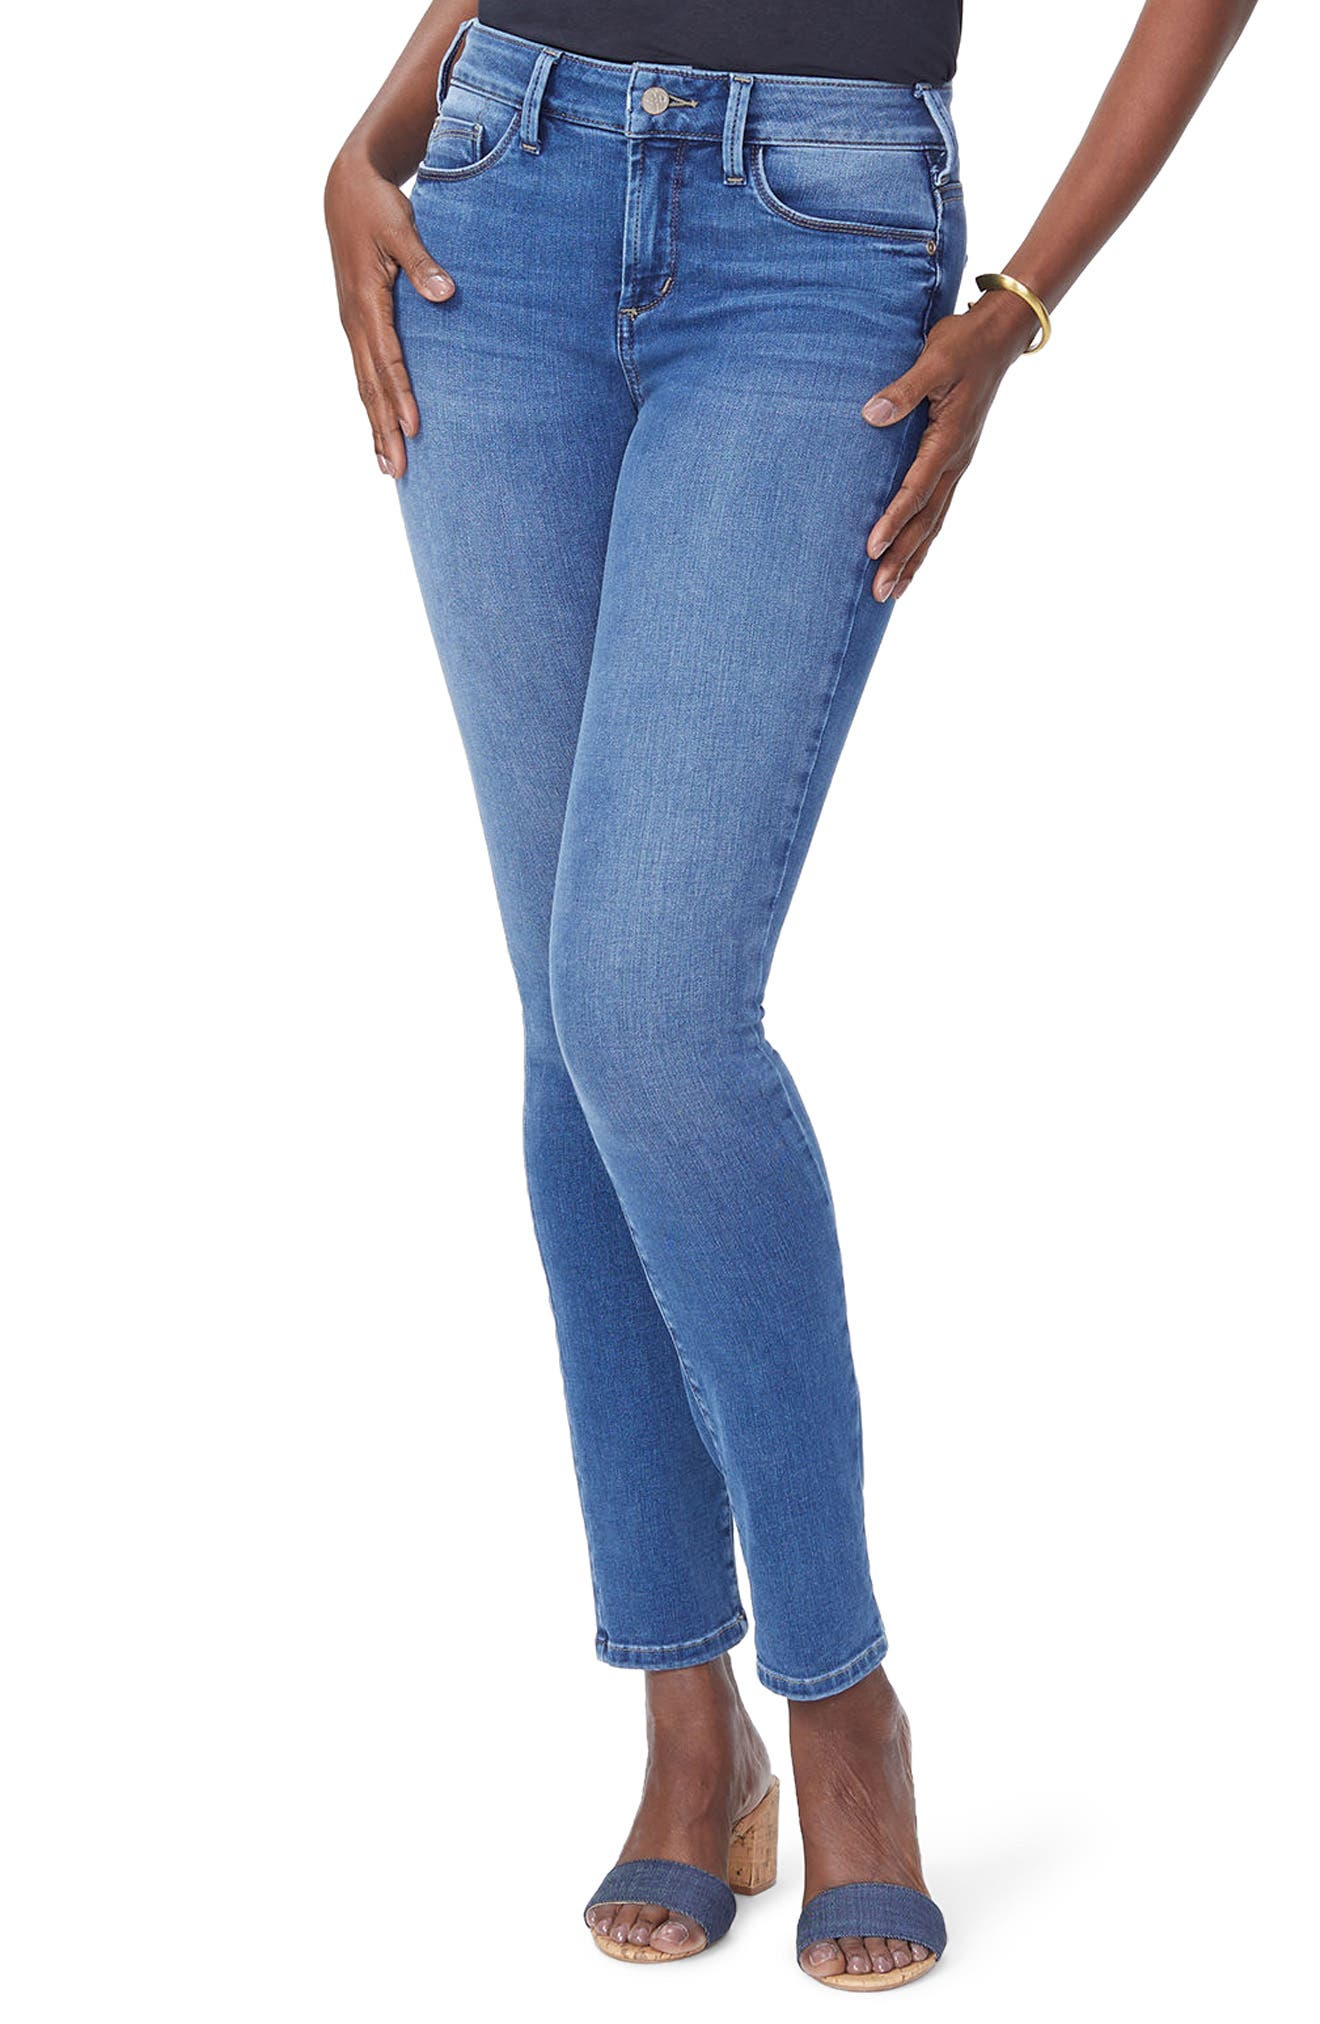 Alina High Waist Uplift Skinny Jeans,                         Main,                         color, 419